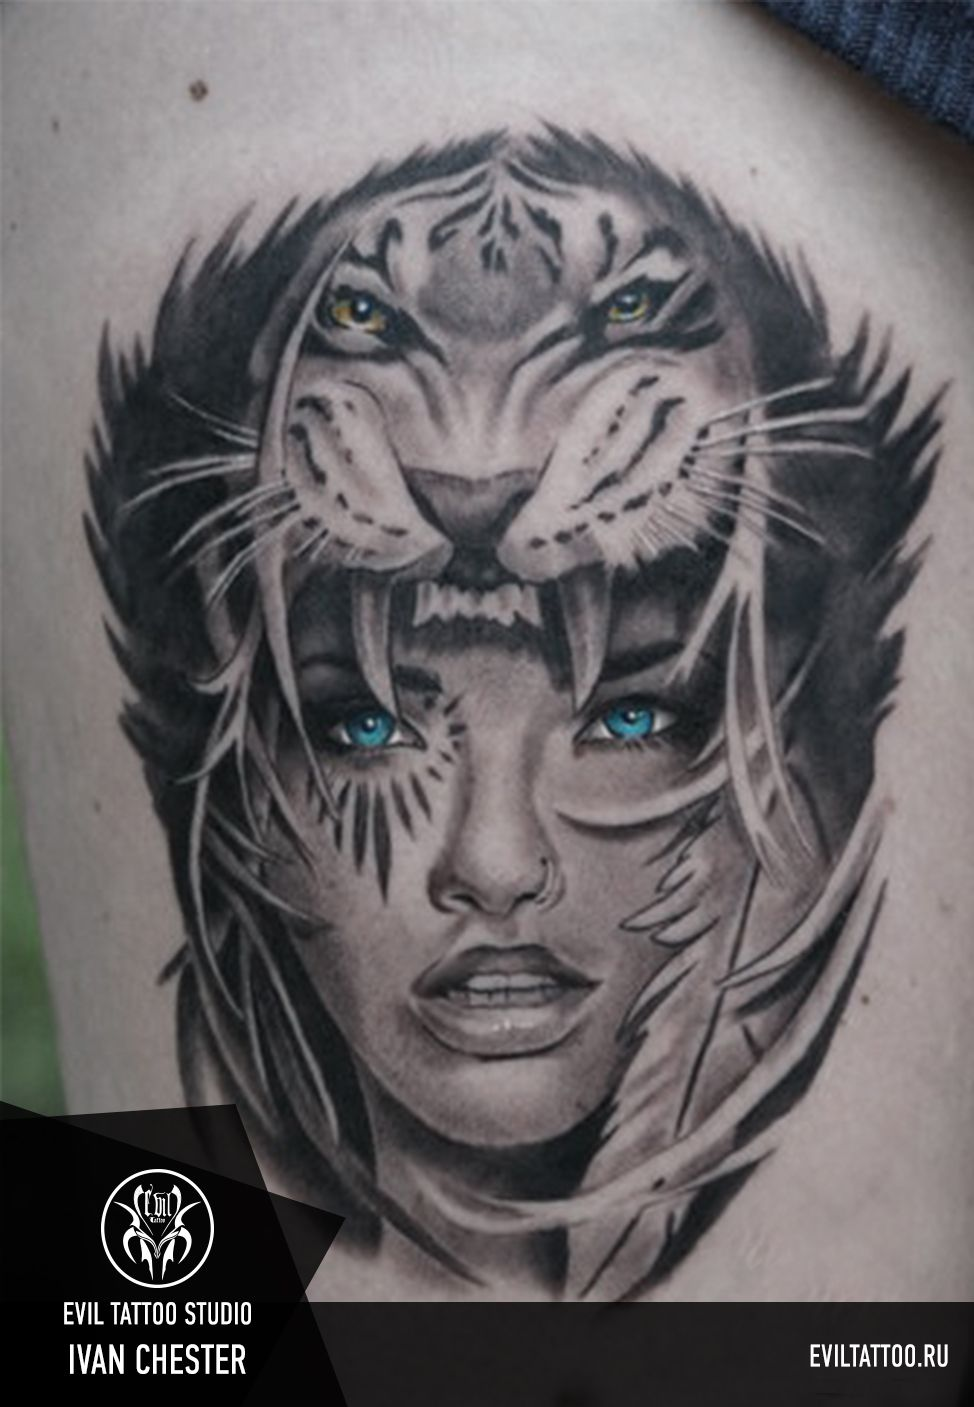 Tattoo by Ivan Chester